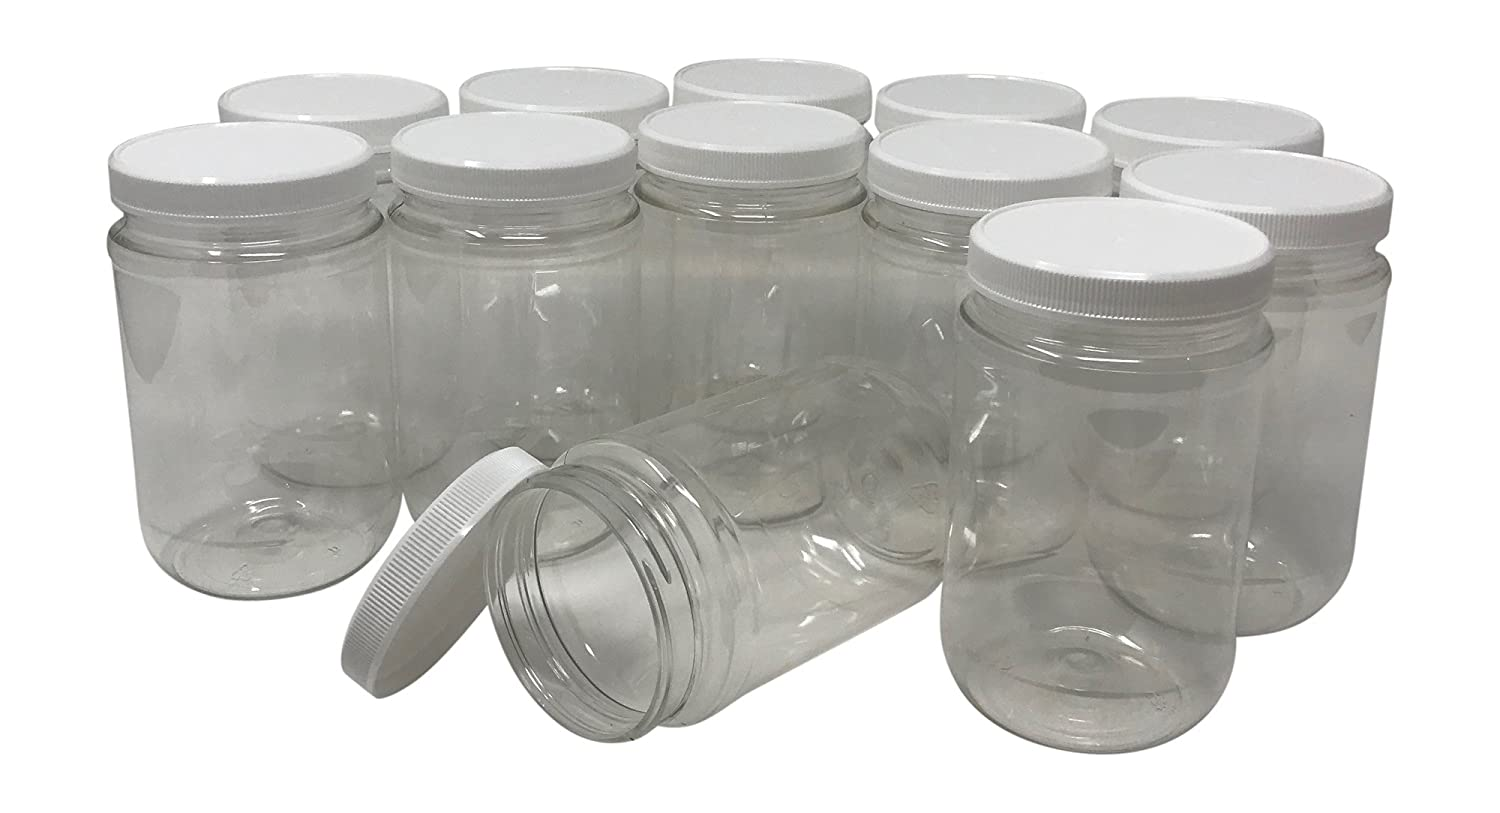 efd136d87209 CSBD 16 Oz Clear Plastic Mason Jars With Ribbed Liner Screw On Lids, Wide  Mouth, ECO, BPA Free, PET Plastic, Made In USA, Bulk Storage Containers, 12  ...